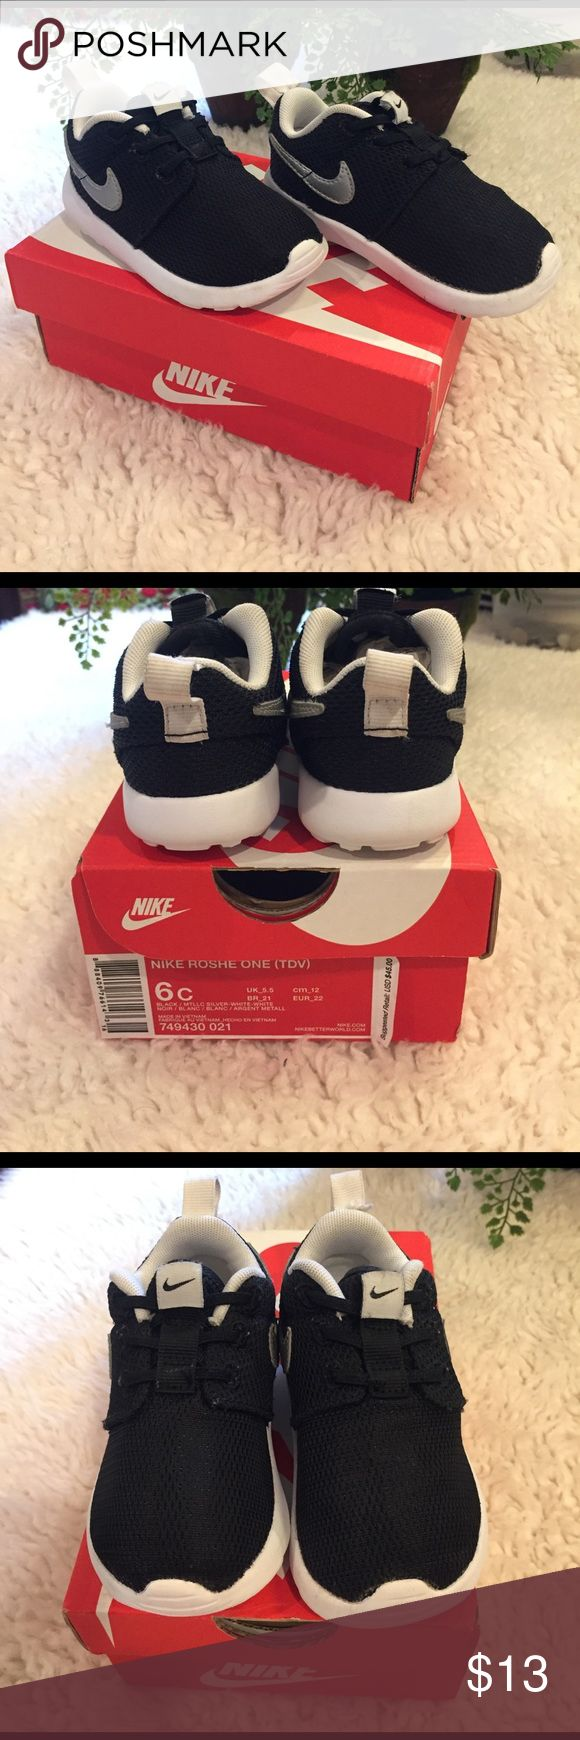 Black Toddler Nike roshe one 6C Black toddler Nike roshe's in size 6C. Worn a few times and back flap on left shoe has a rip. Still in pretty great condition. Nike Shoes Sneakers